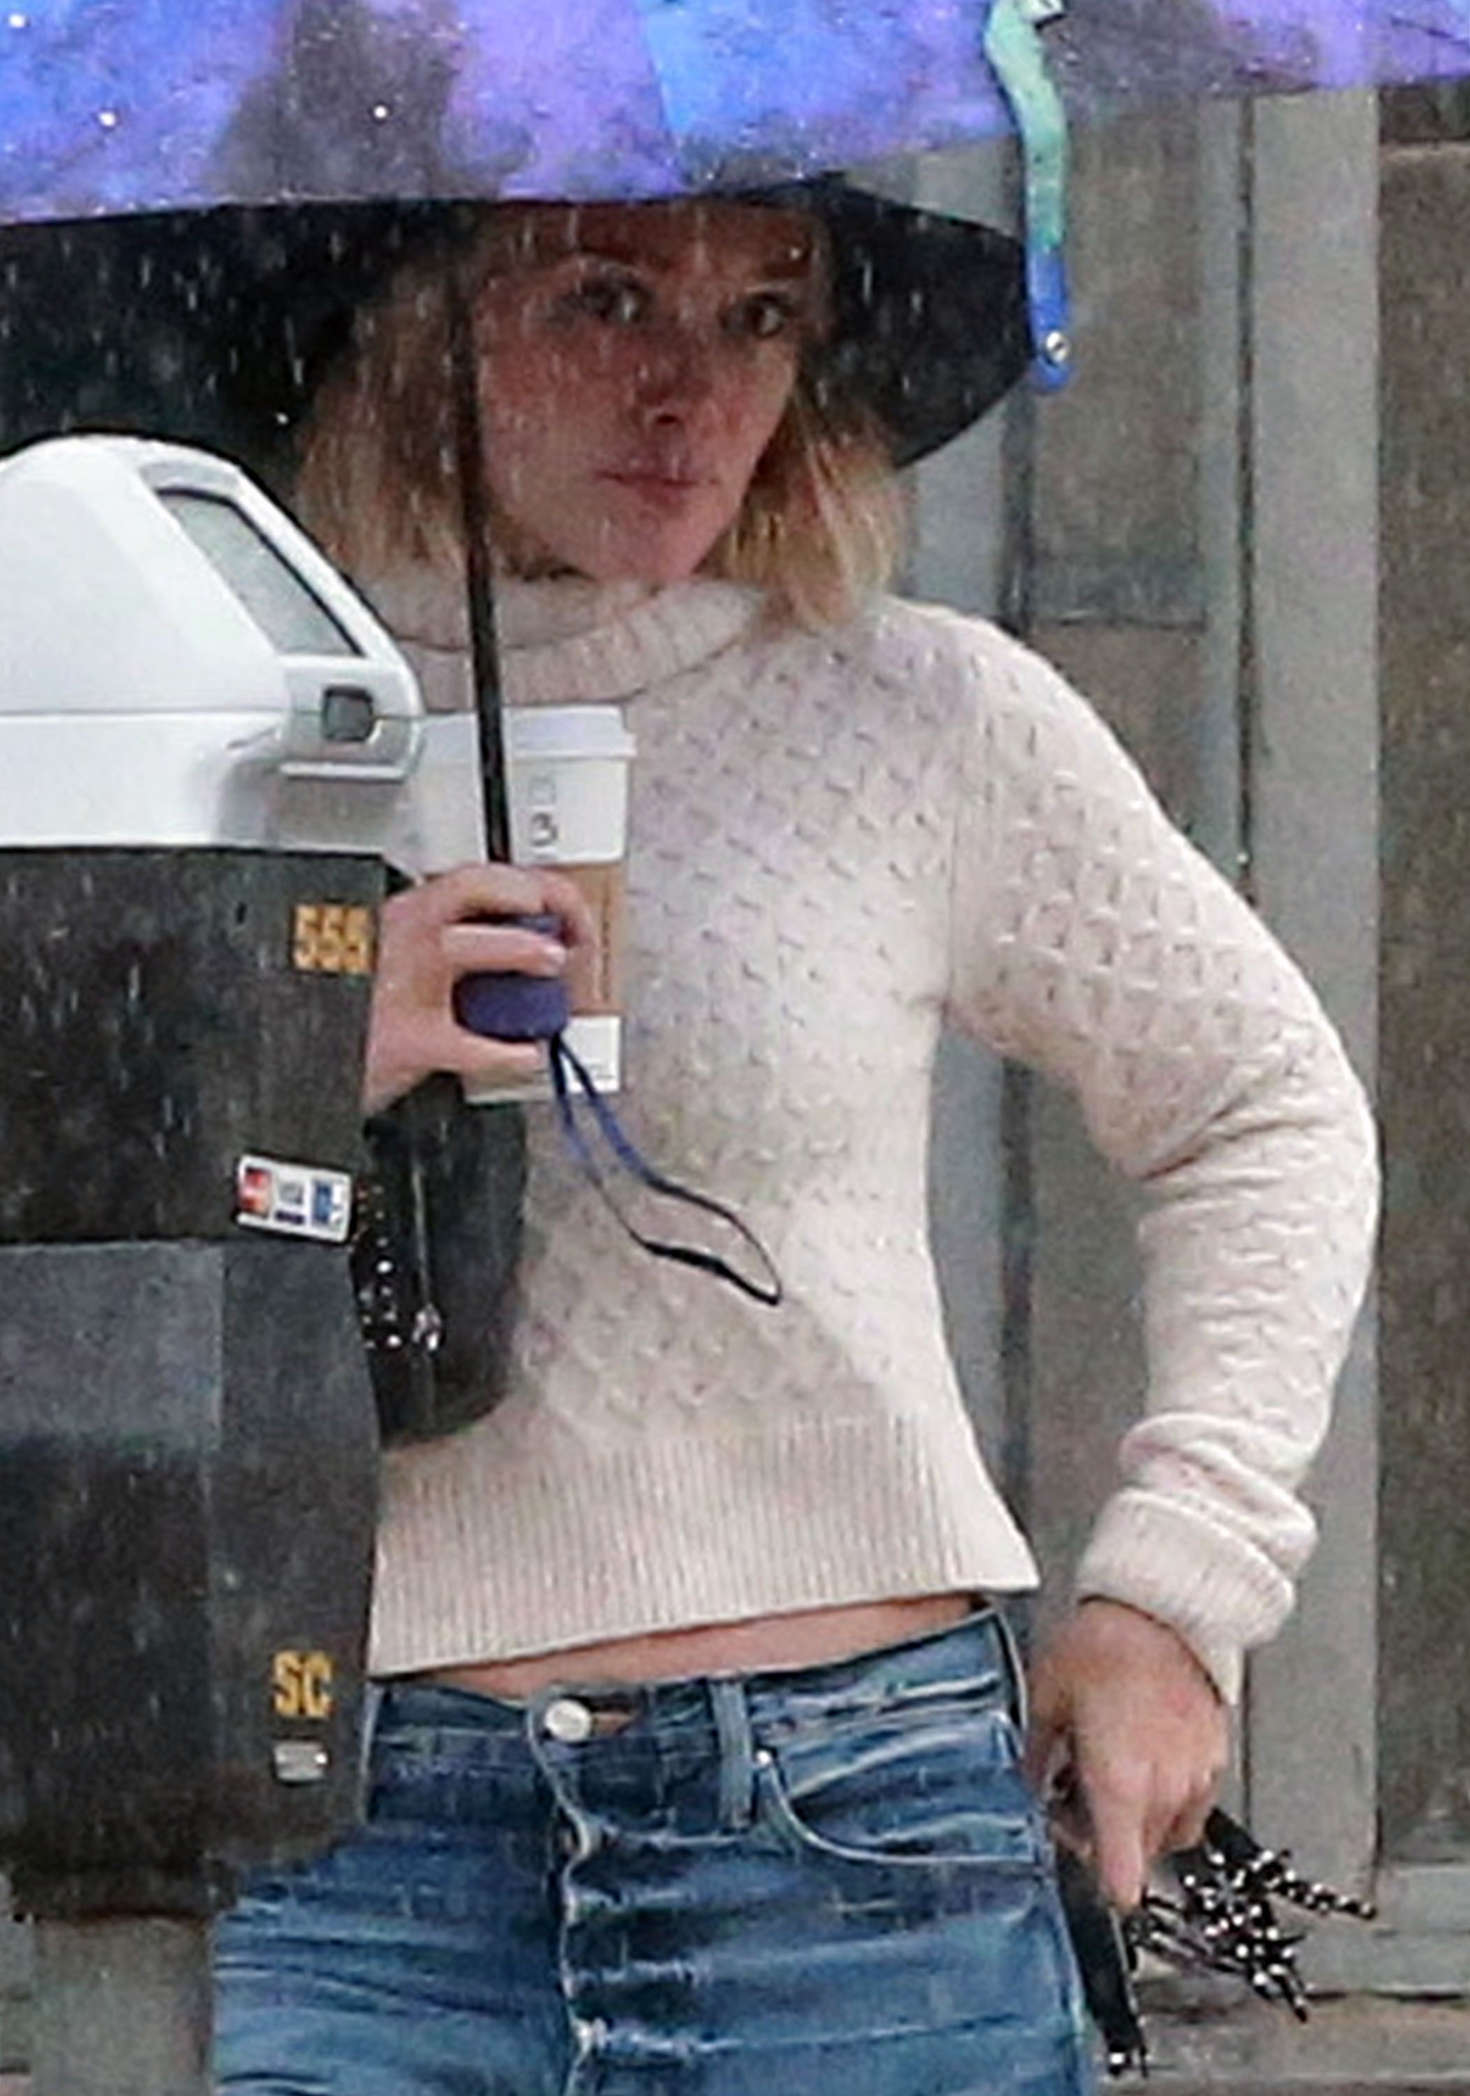 Hilary Duff 2016 : Hilary Duff in Jeans out on a rainy day -13